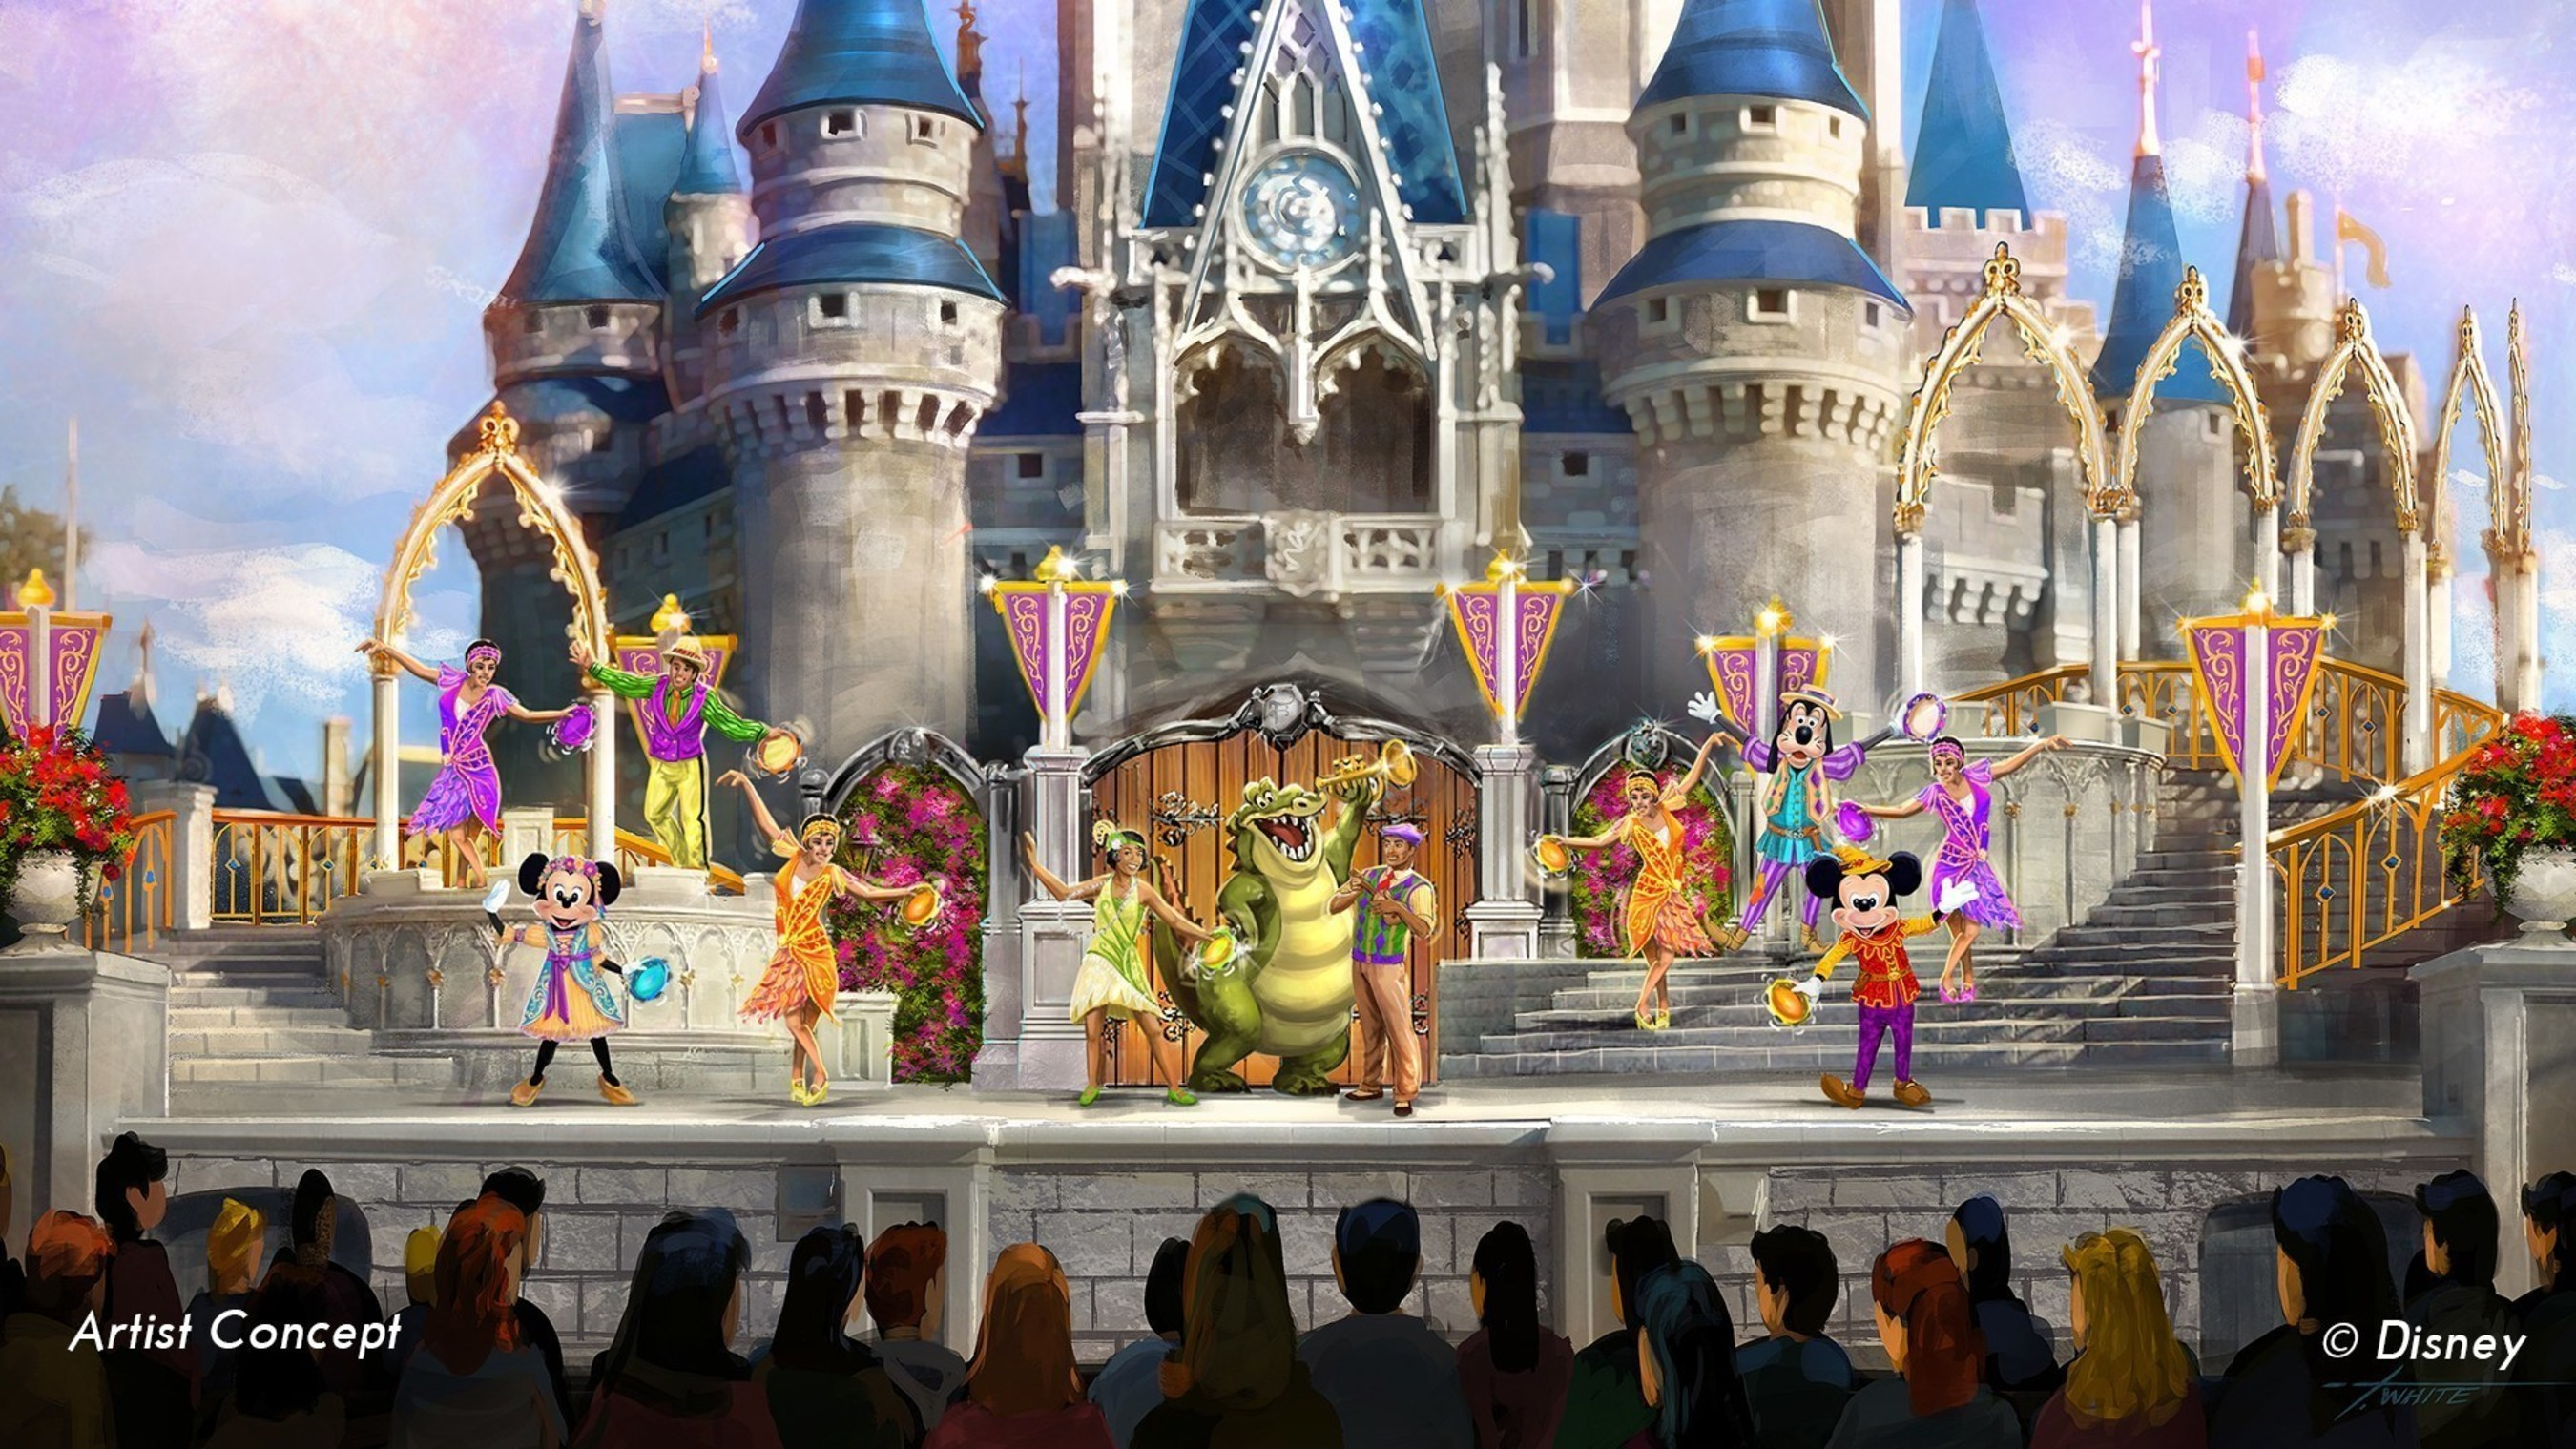 """For the first time, modern Disney characters Tiana of """"Princess and the Frog,"""" and Rapunzel of """"Tangled,"""" co-star with Anna and Elsa of """"Frozen,"""" and a host of classic characters in the new Mickey's Royal Friendship Faire.  Performed on the grandest stage in the kingdom, the star-studded tale of friendship presents Mickey Mouse and his troupe of Merry Makers - Minnie Mouse, Donald, Daisy and Goofy - who invite 10 new friends from different animated worlds to join the celebration.  (Disney)"""